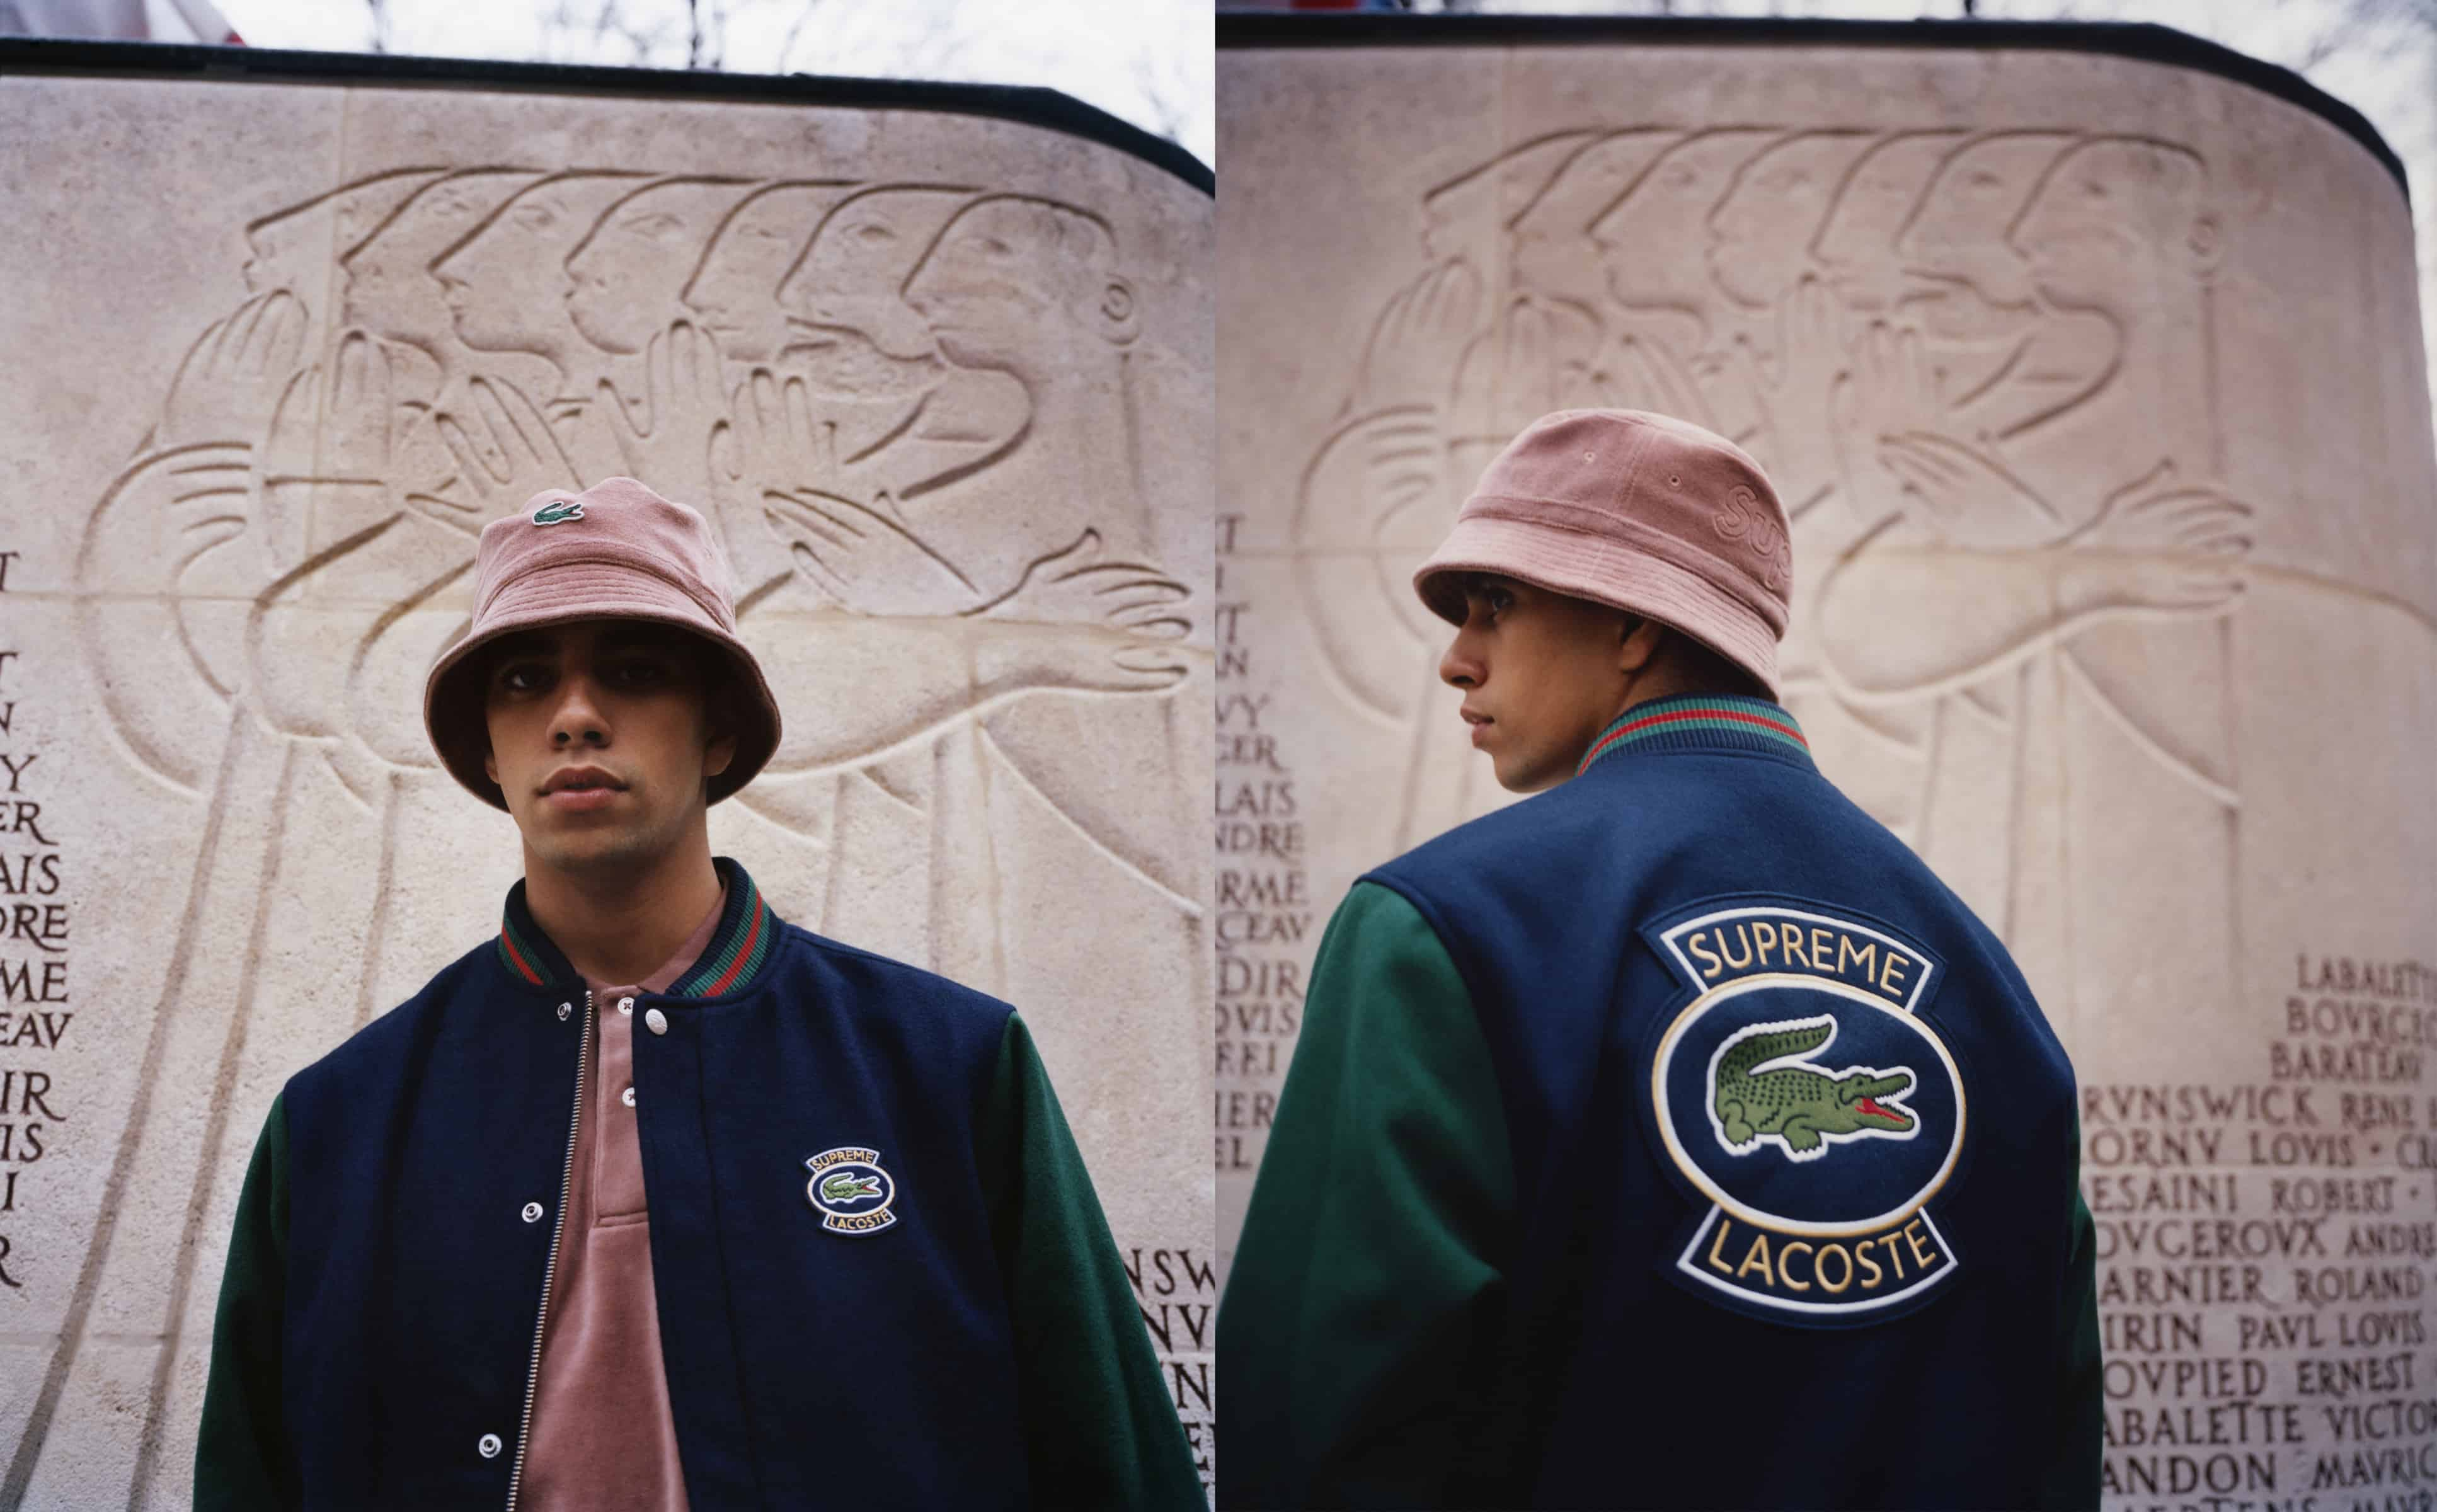 LACOSTE TO DROP SECOND COLLAB WITH SUPREME a0a240d2f3db